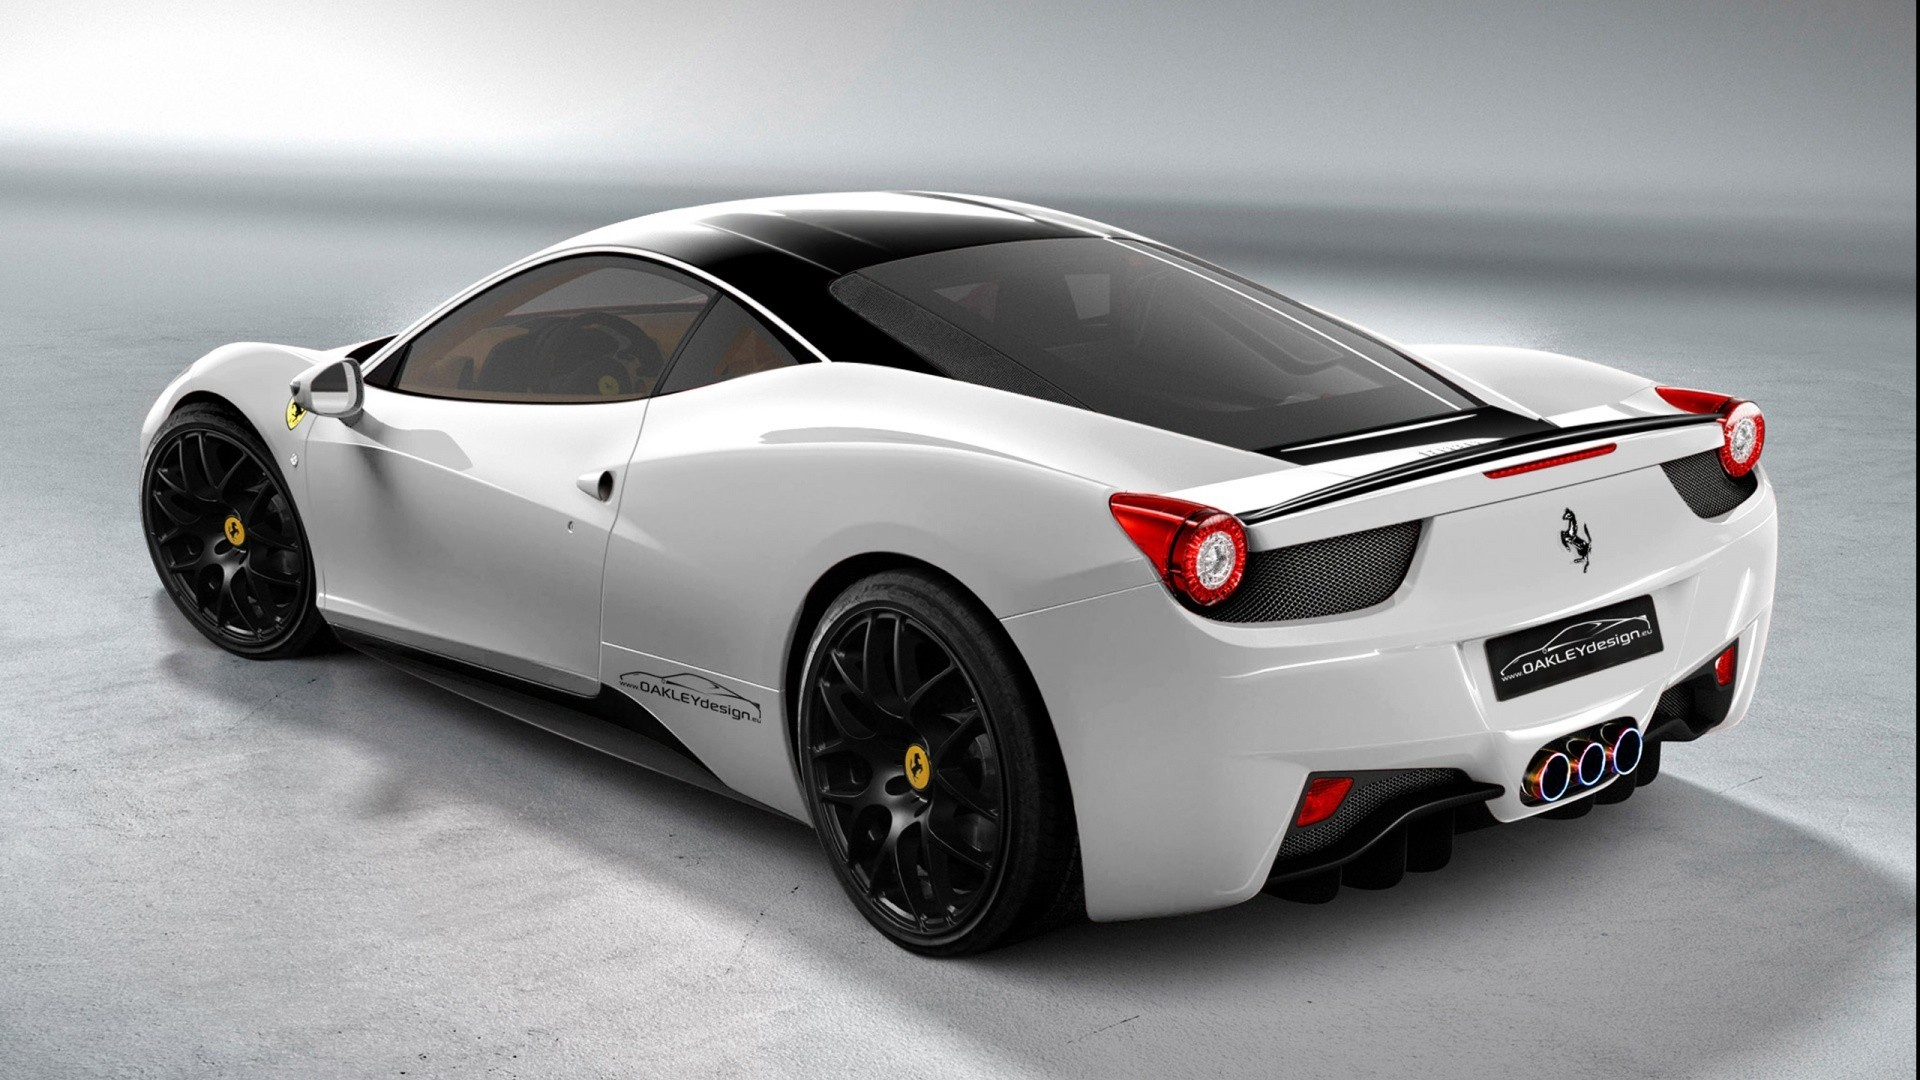 white cars vehicles ferrari HD Wallpaper